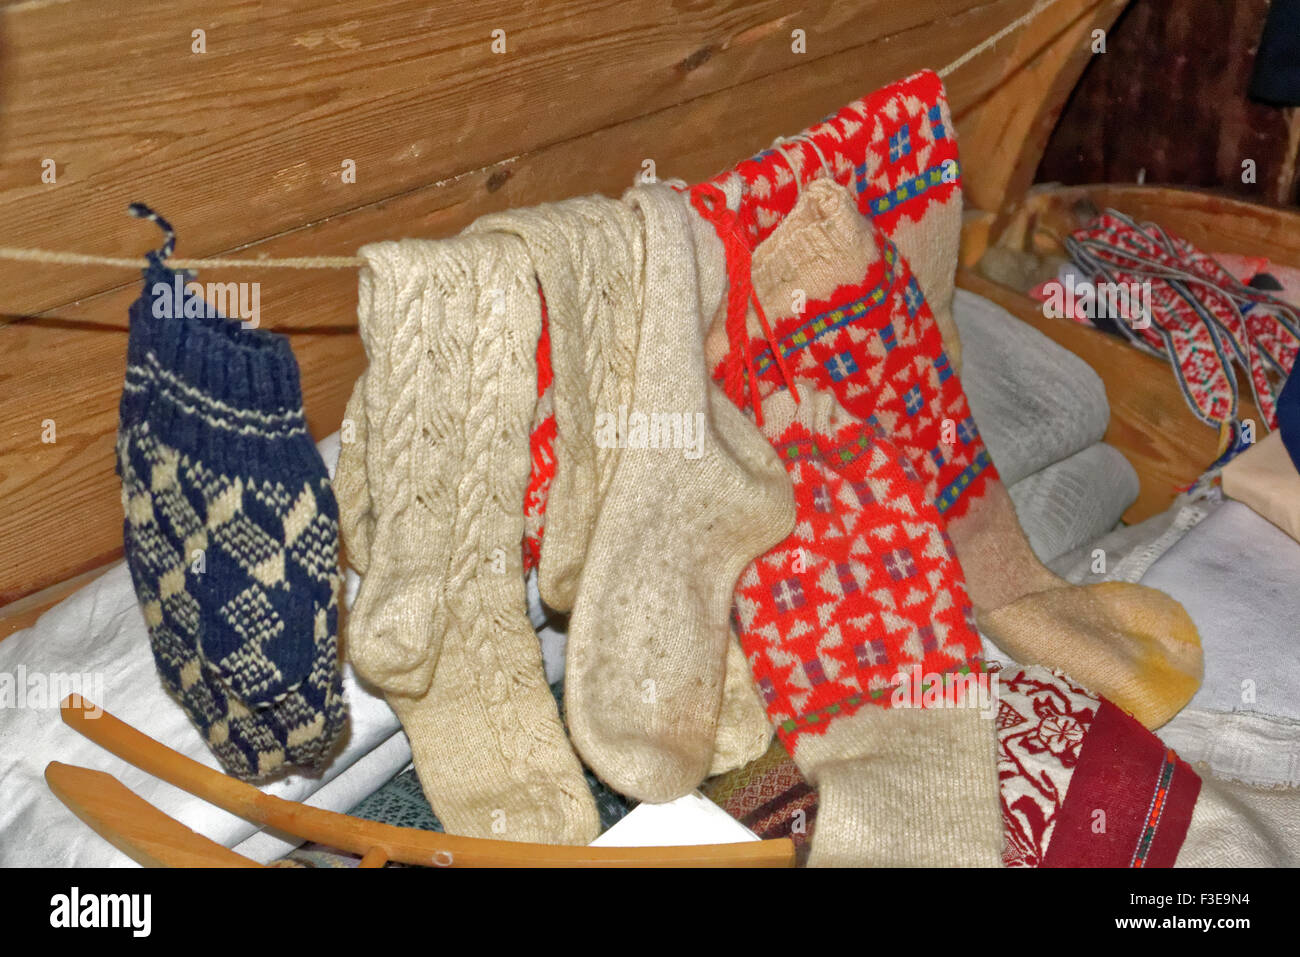 Homemade knitted socks in a a rustical bedroom in Setomaa. - Stock Image